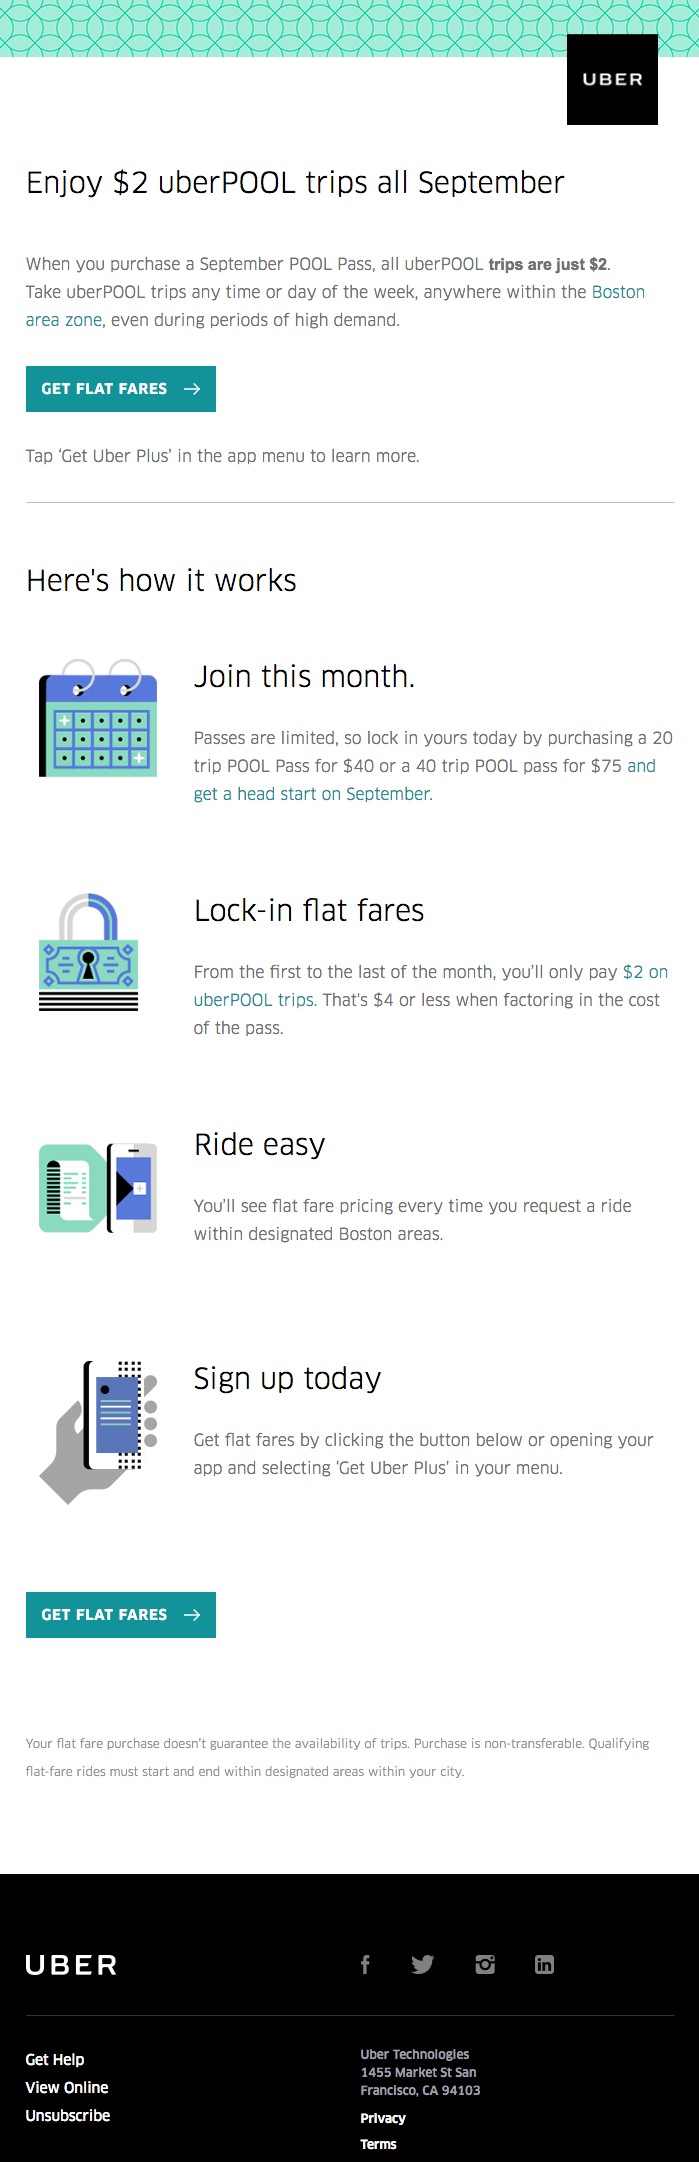 uber-email-example.png